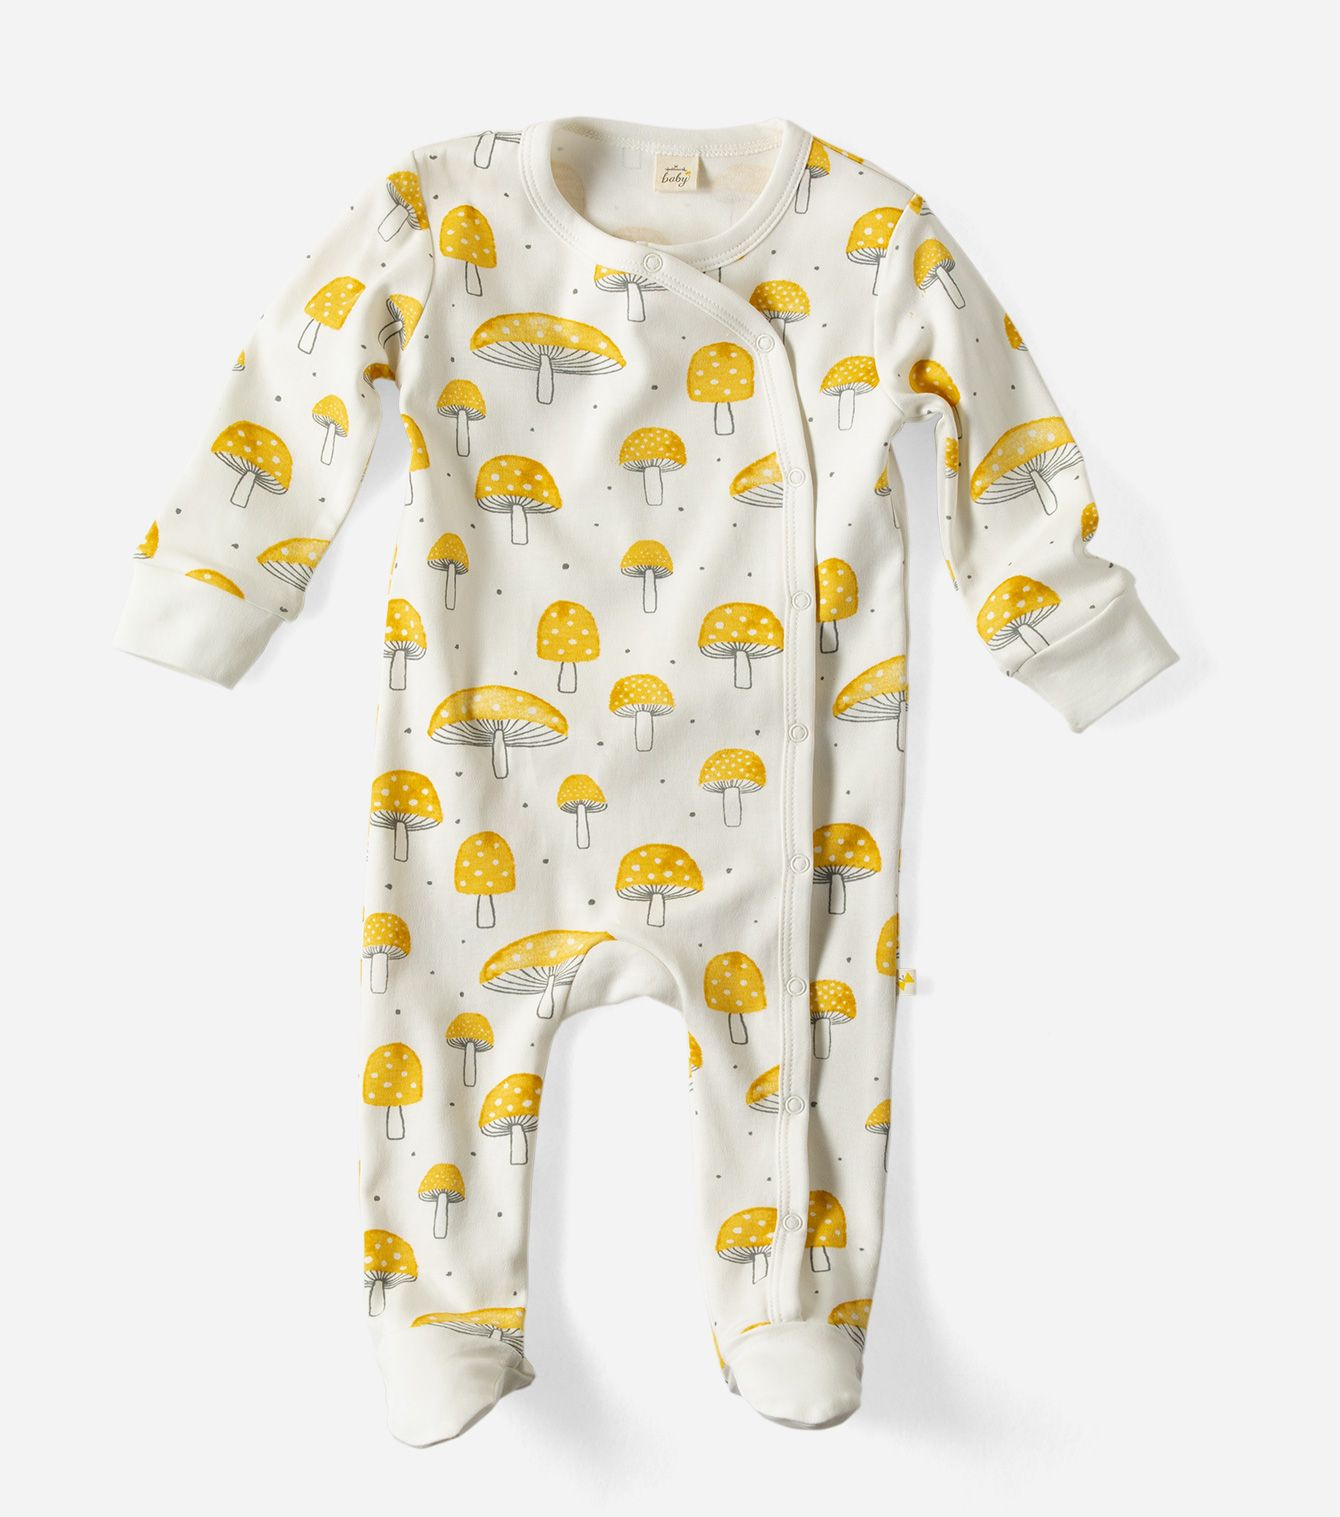 Snuggle baby sweetly to sleep in this adorable footed sleeper